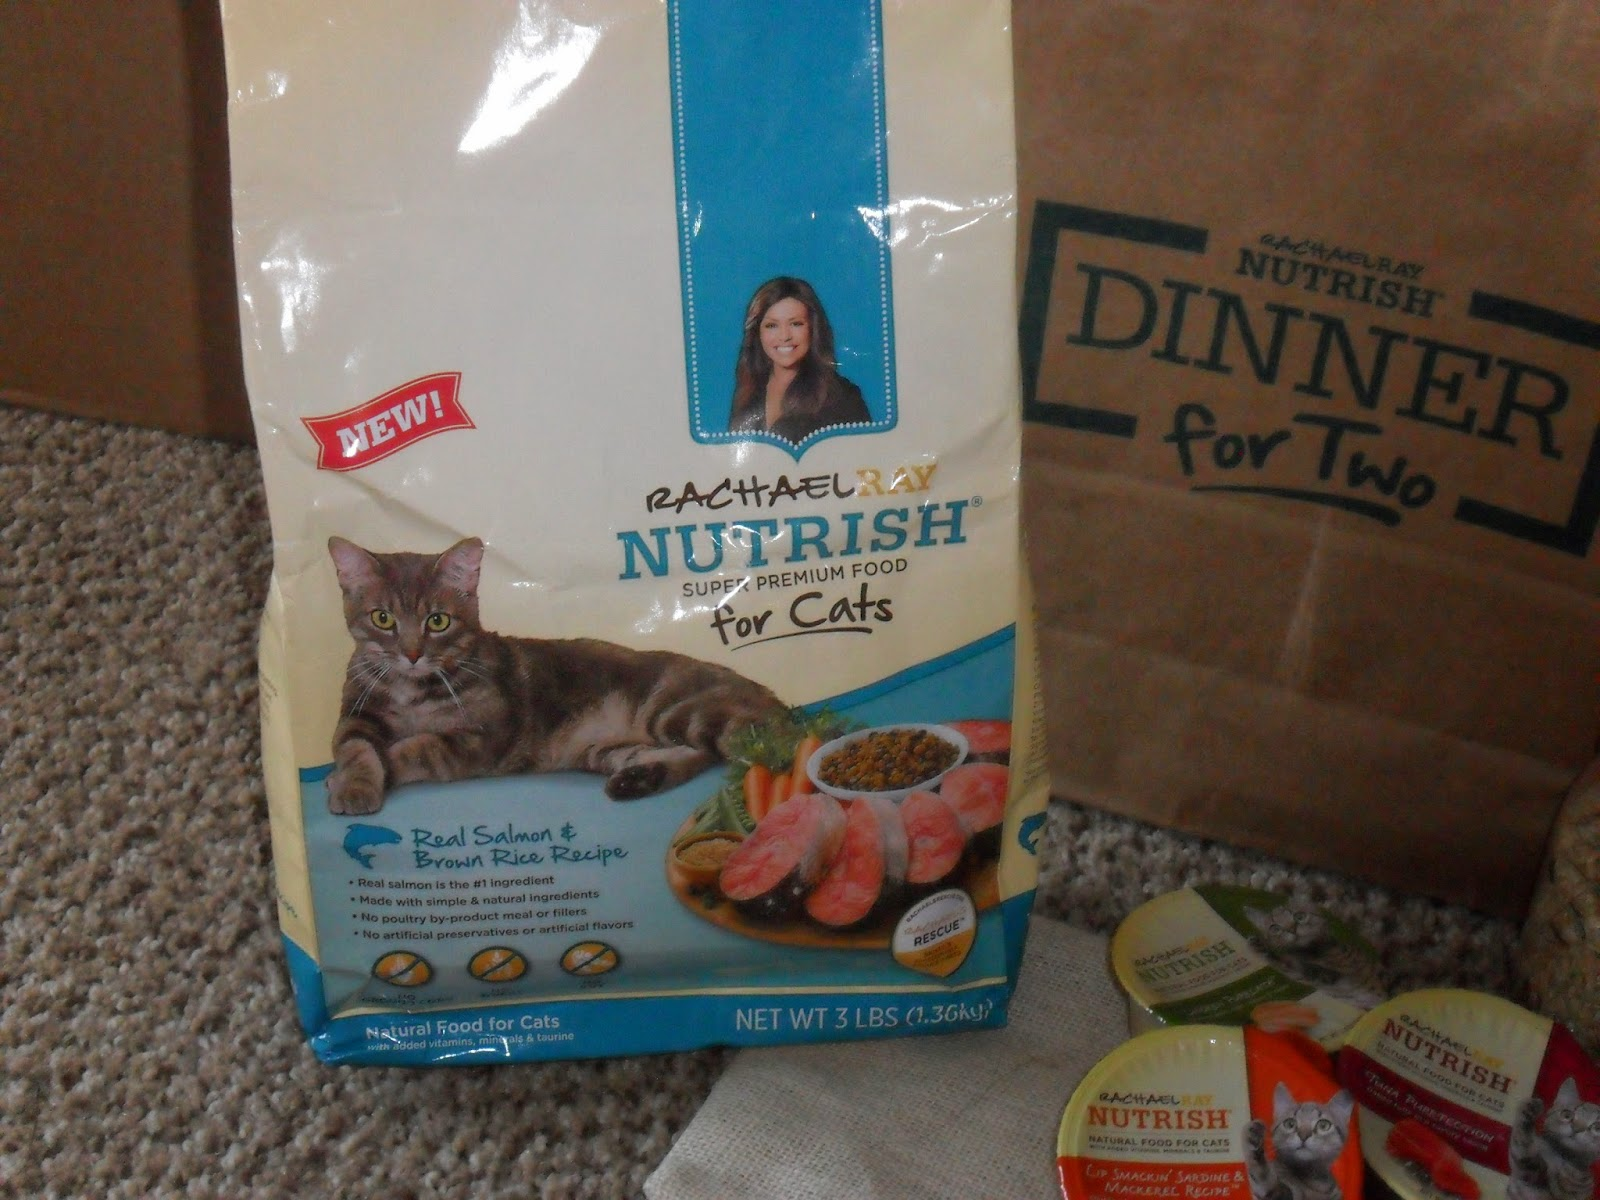 My best furfriend Kami #Sponsored, #MC, and #NutrishforCats #BFF Review & Giveaway